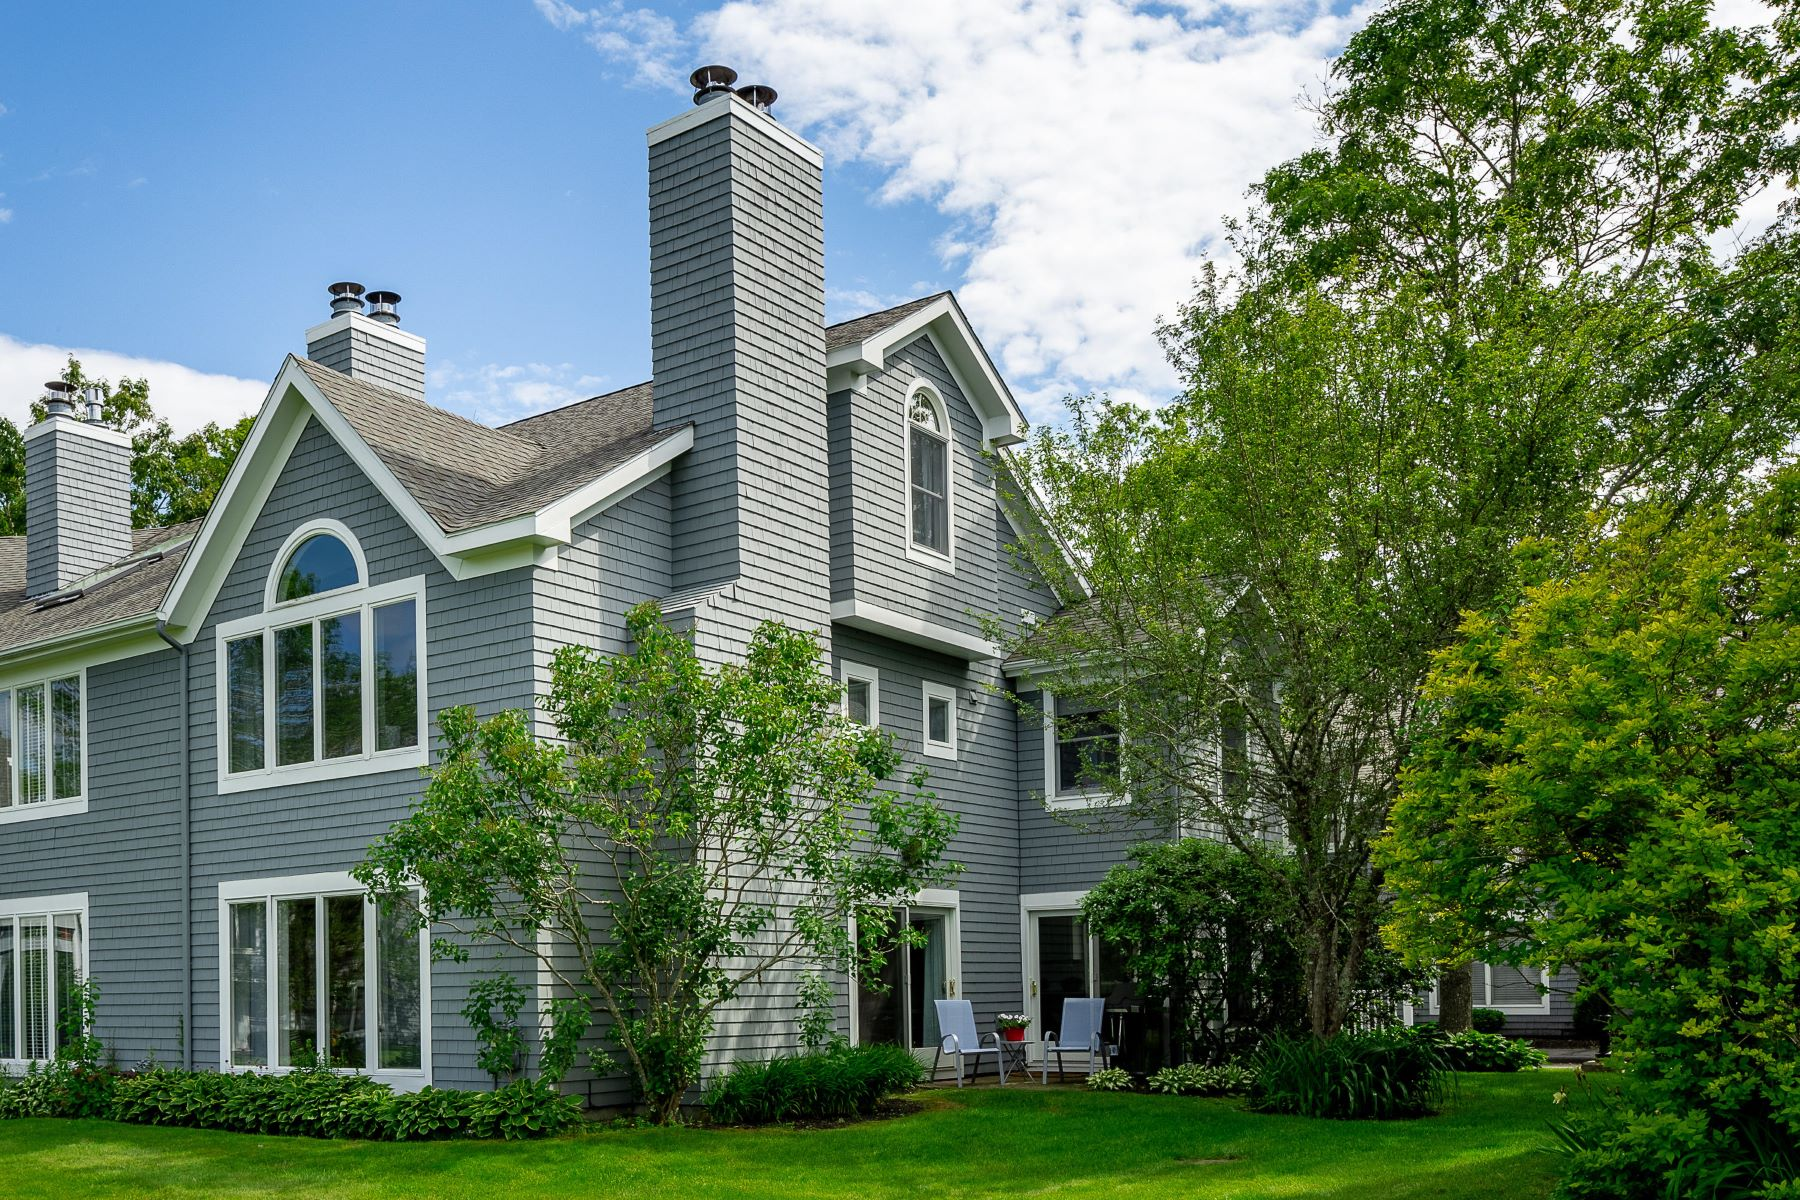 Condominiums for Sale at 43 Mcfarland Point Drive 11, Boothbay Harbor, Maine 04538 United States